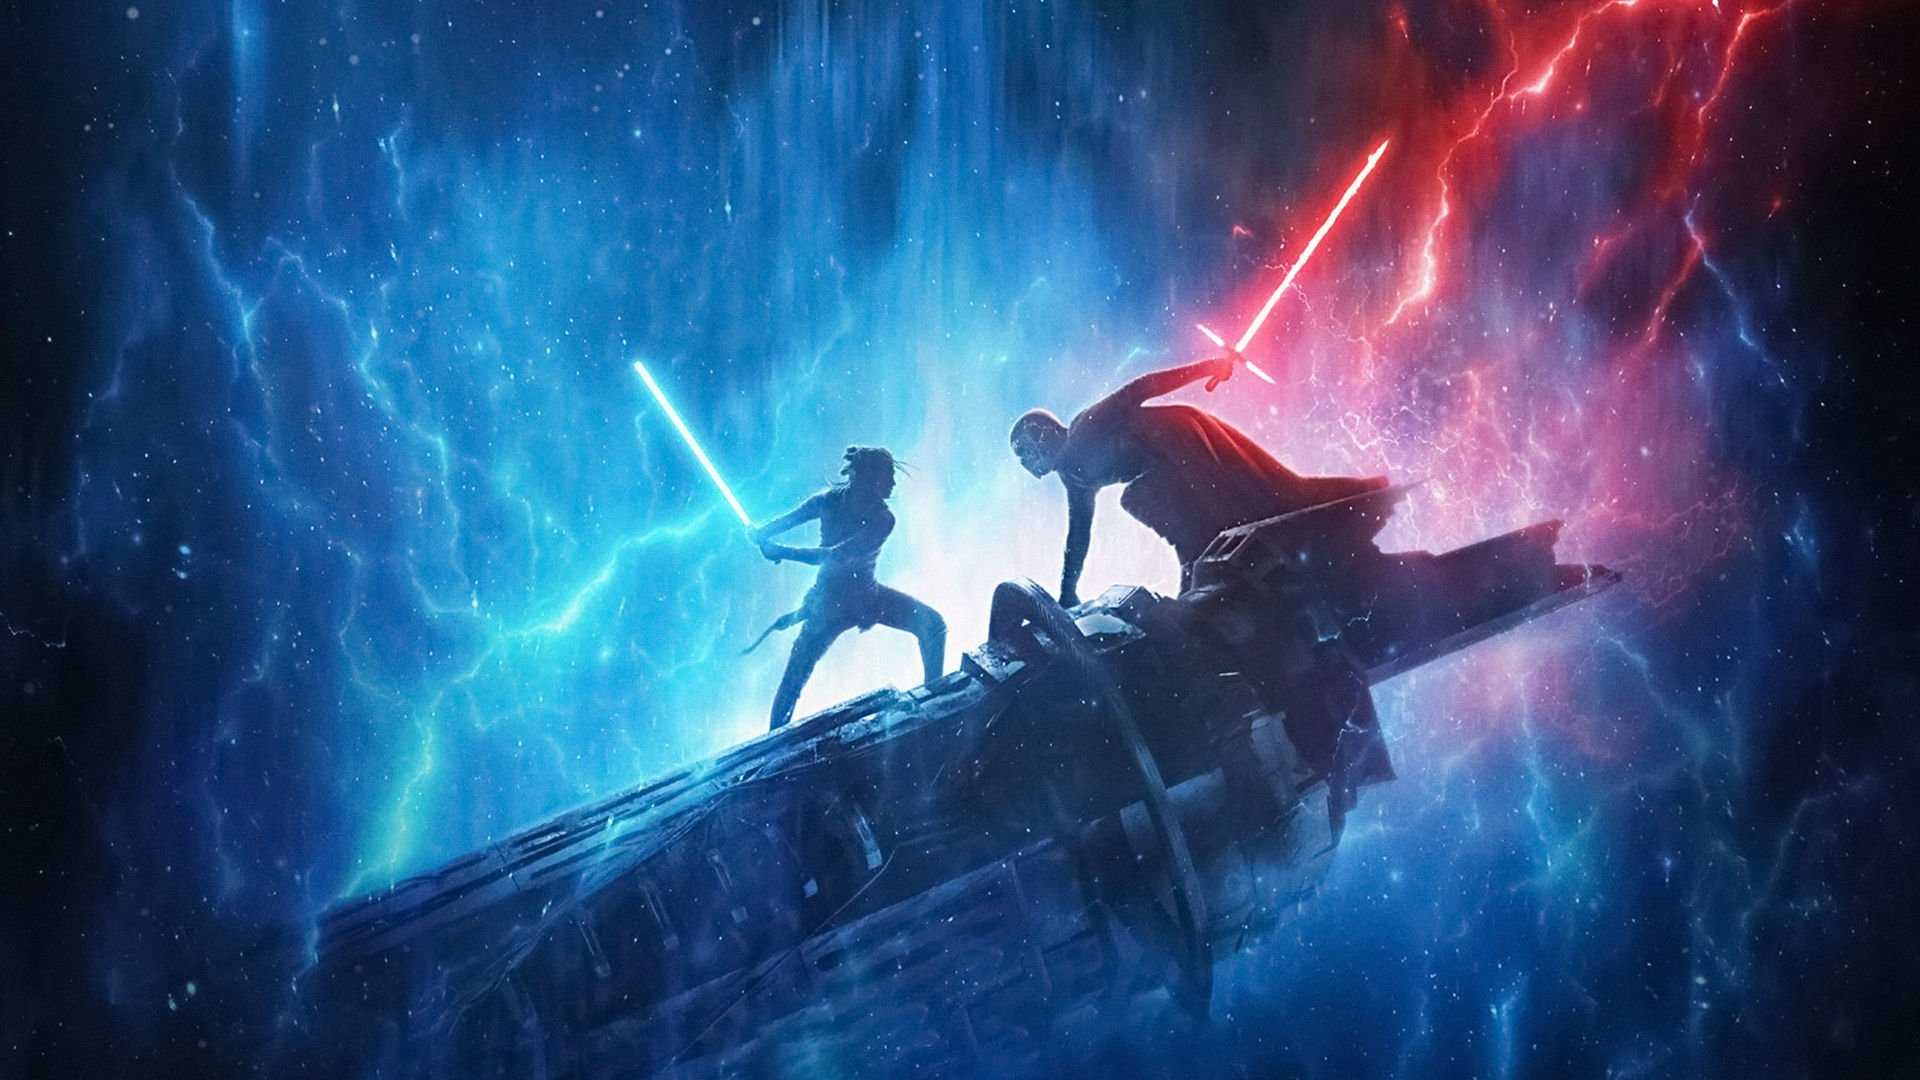 Star Wars : The Rise of Skywalker sur Disney+, le 4 mai... forcément